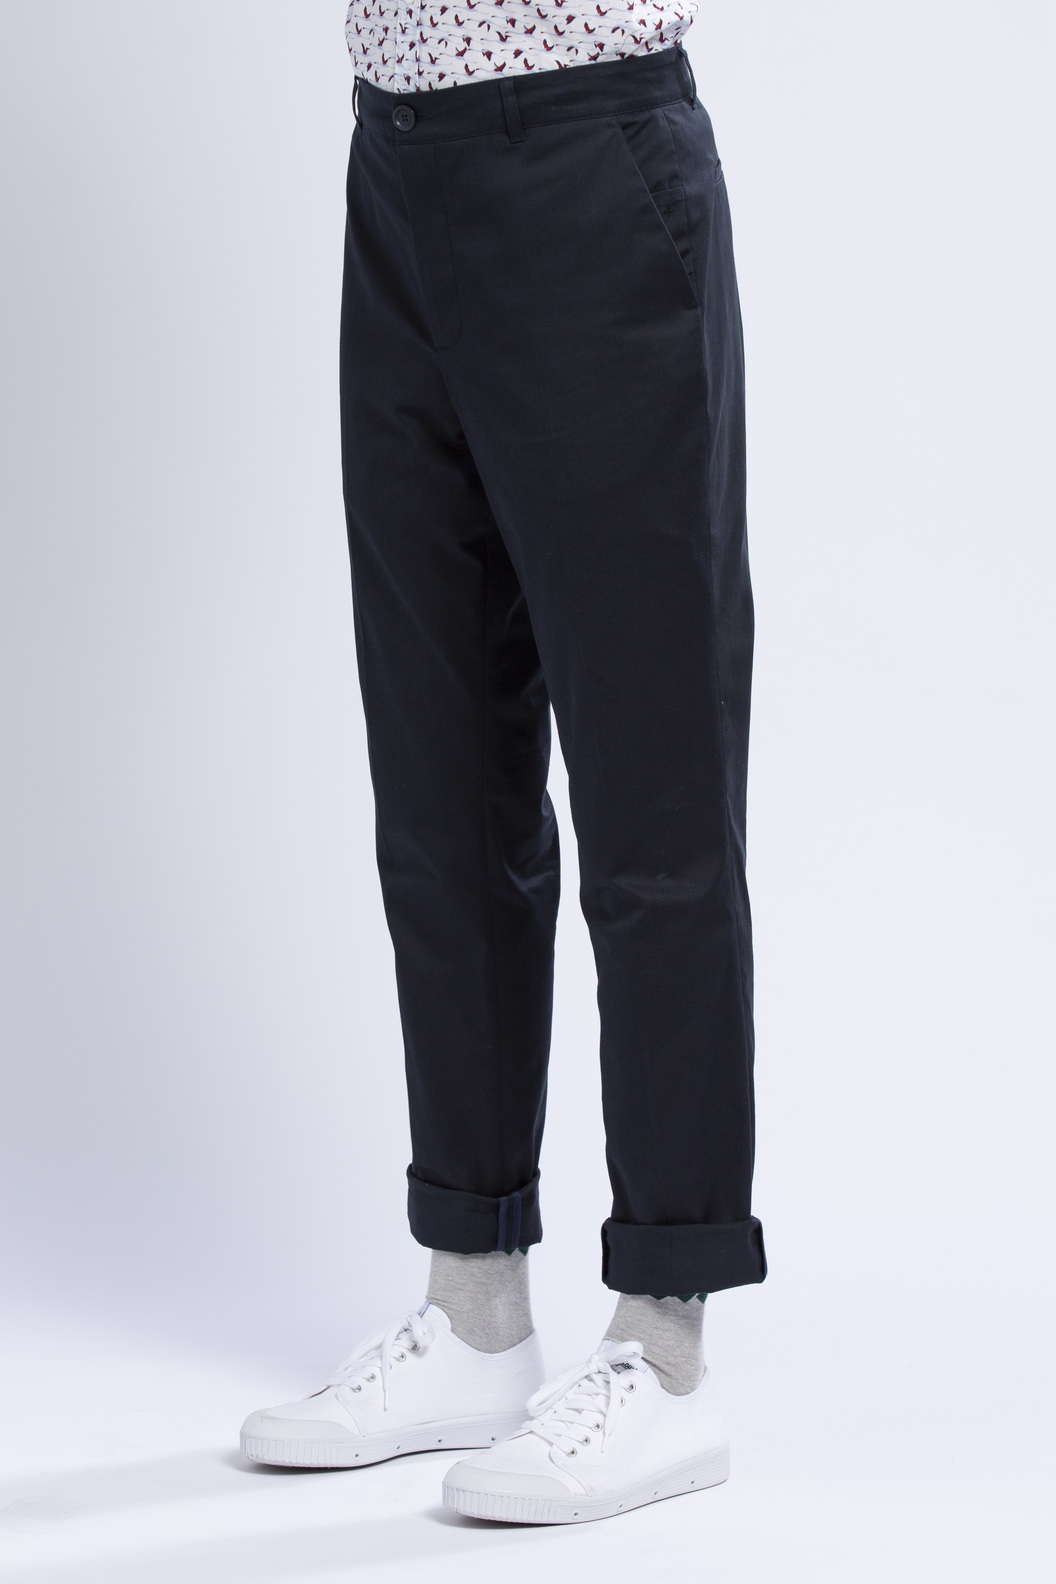 PANTS GN6 - Navy